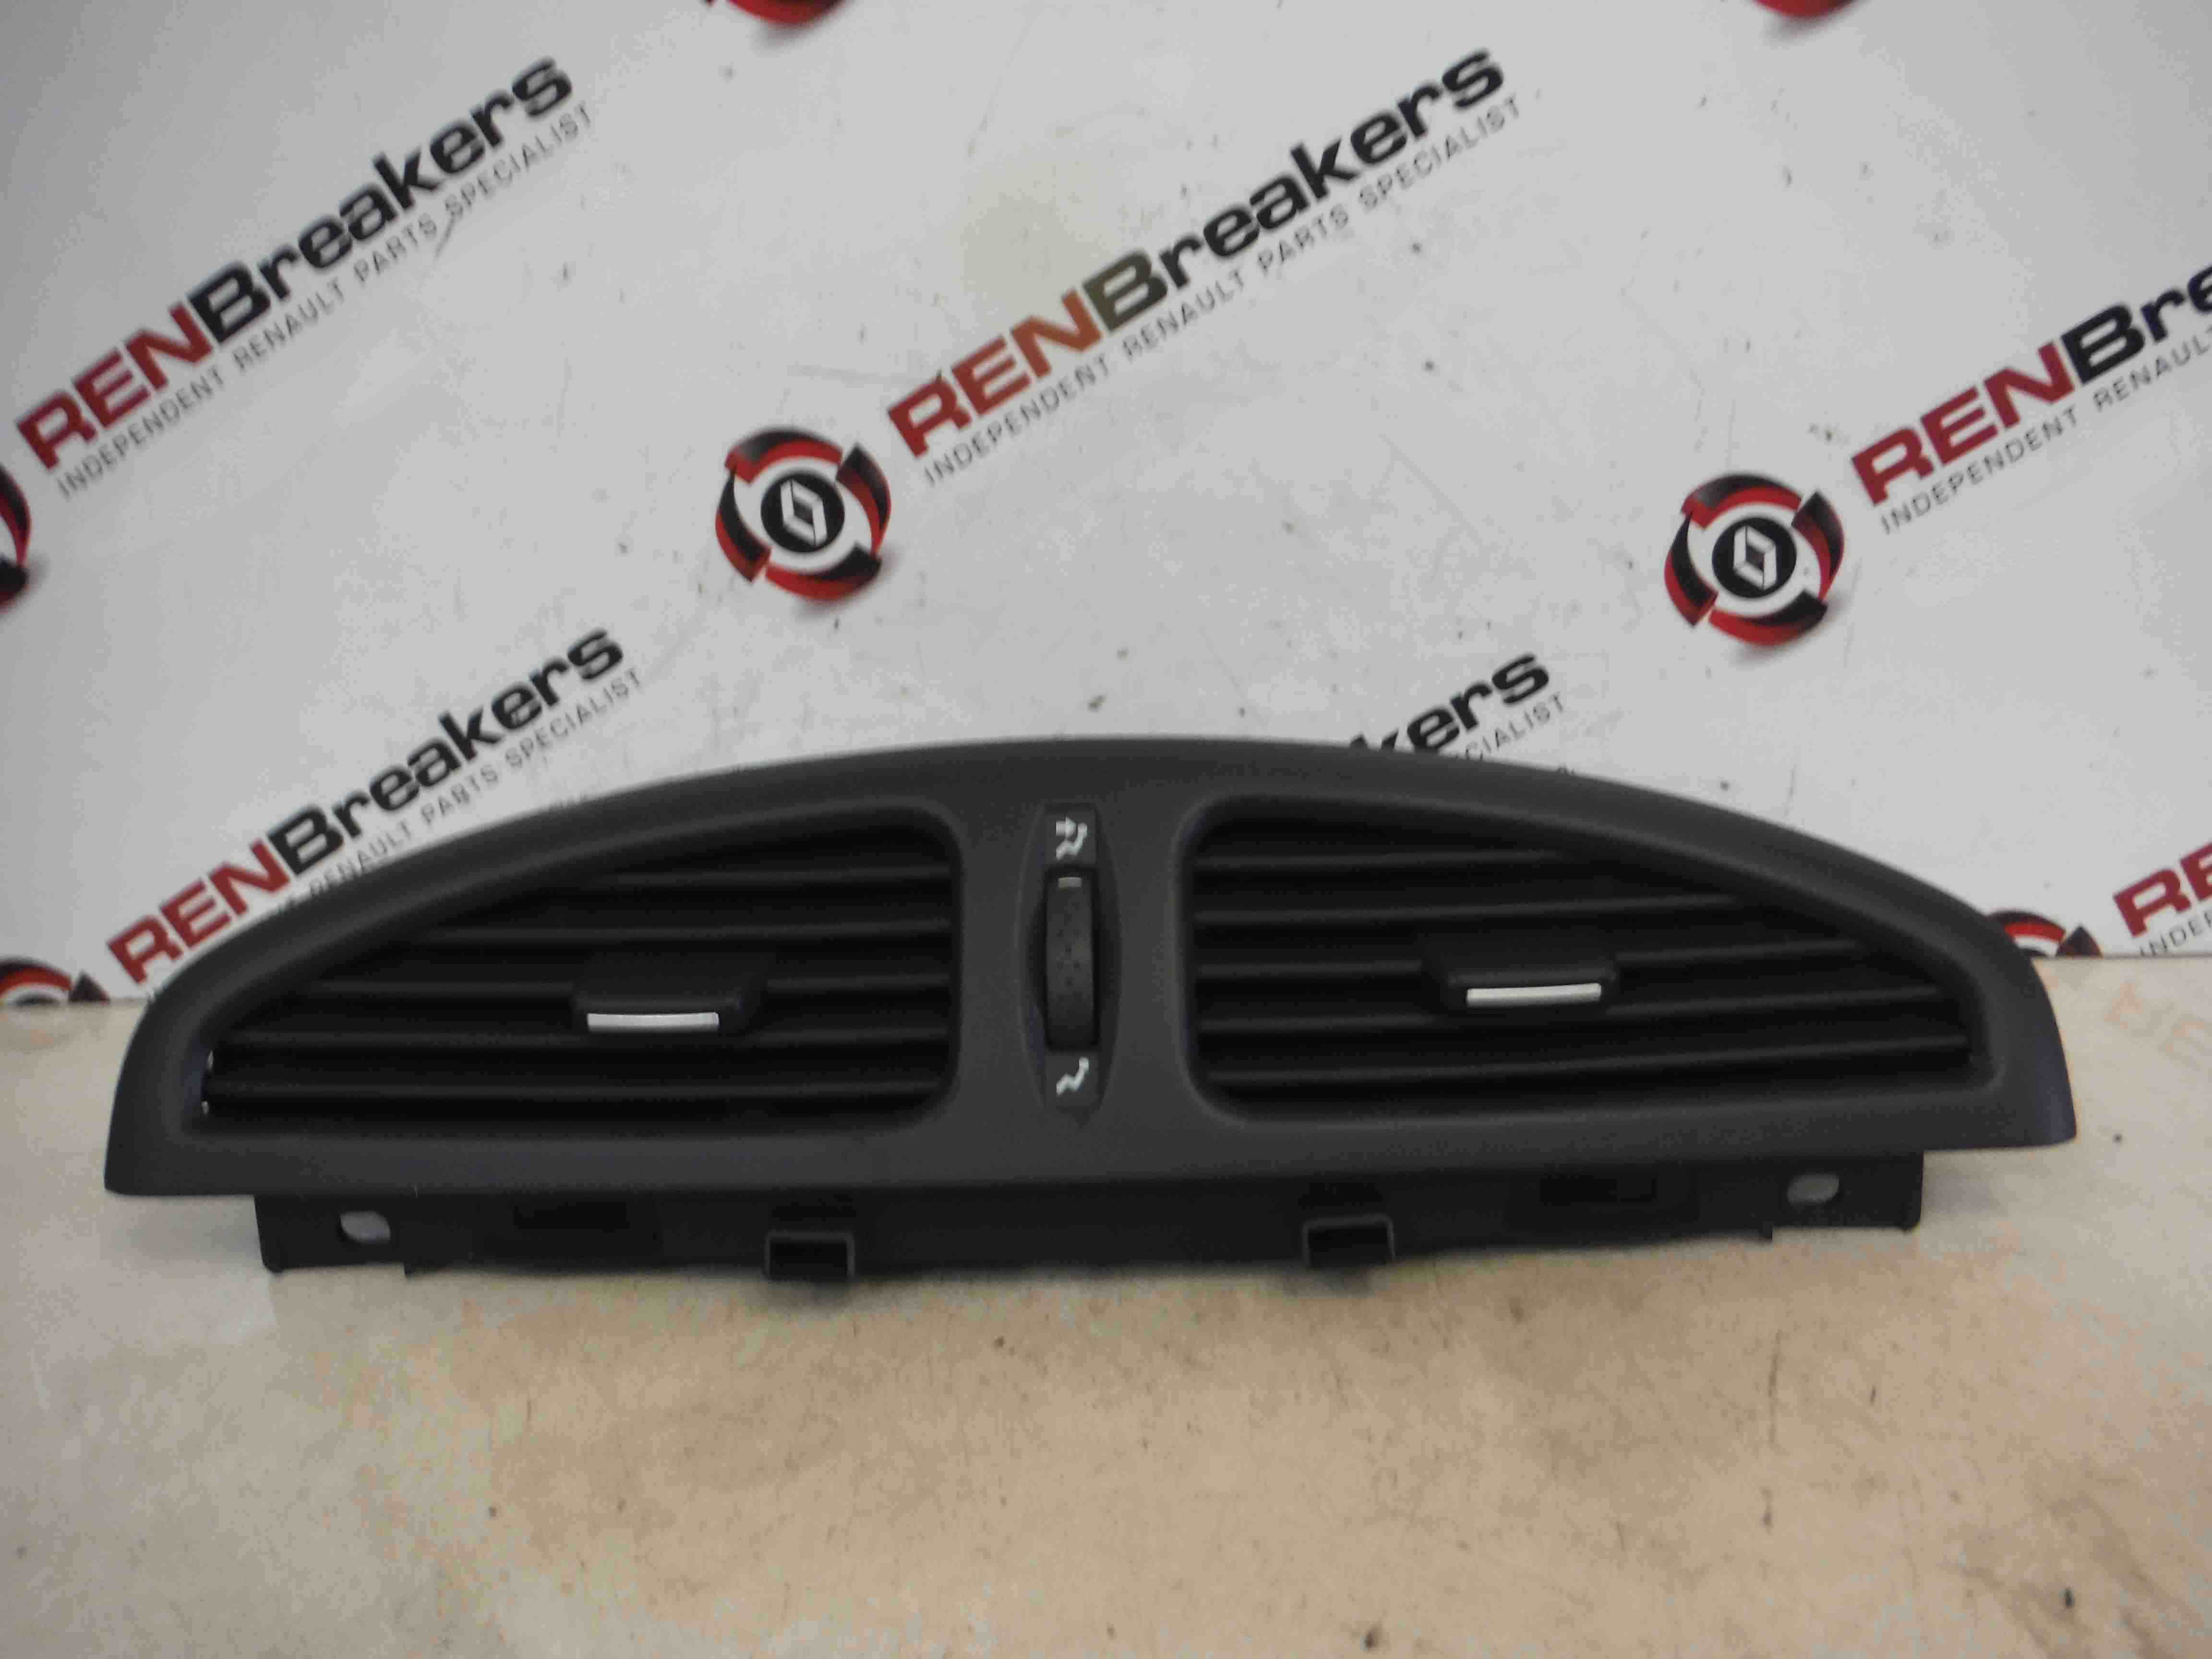 Renault Laguna 2005-2007 Dashboard Centre Heater Vents Ducts Air